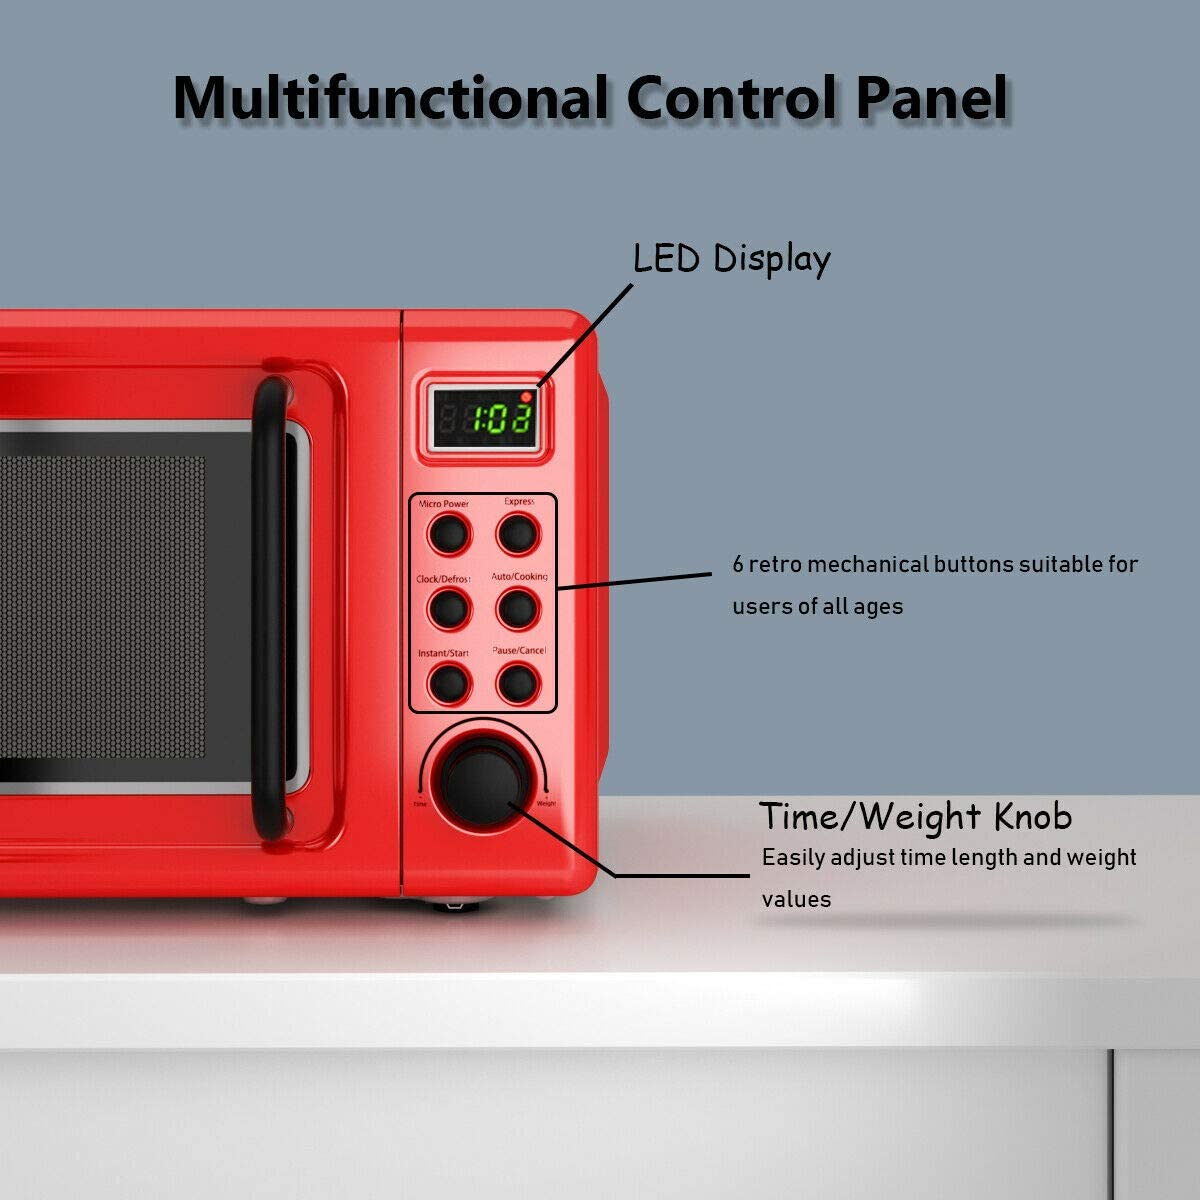 COSTWAY-Retro-Countertop-Microwave-Oven-Extra-Feature